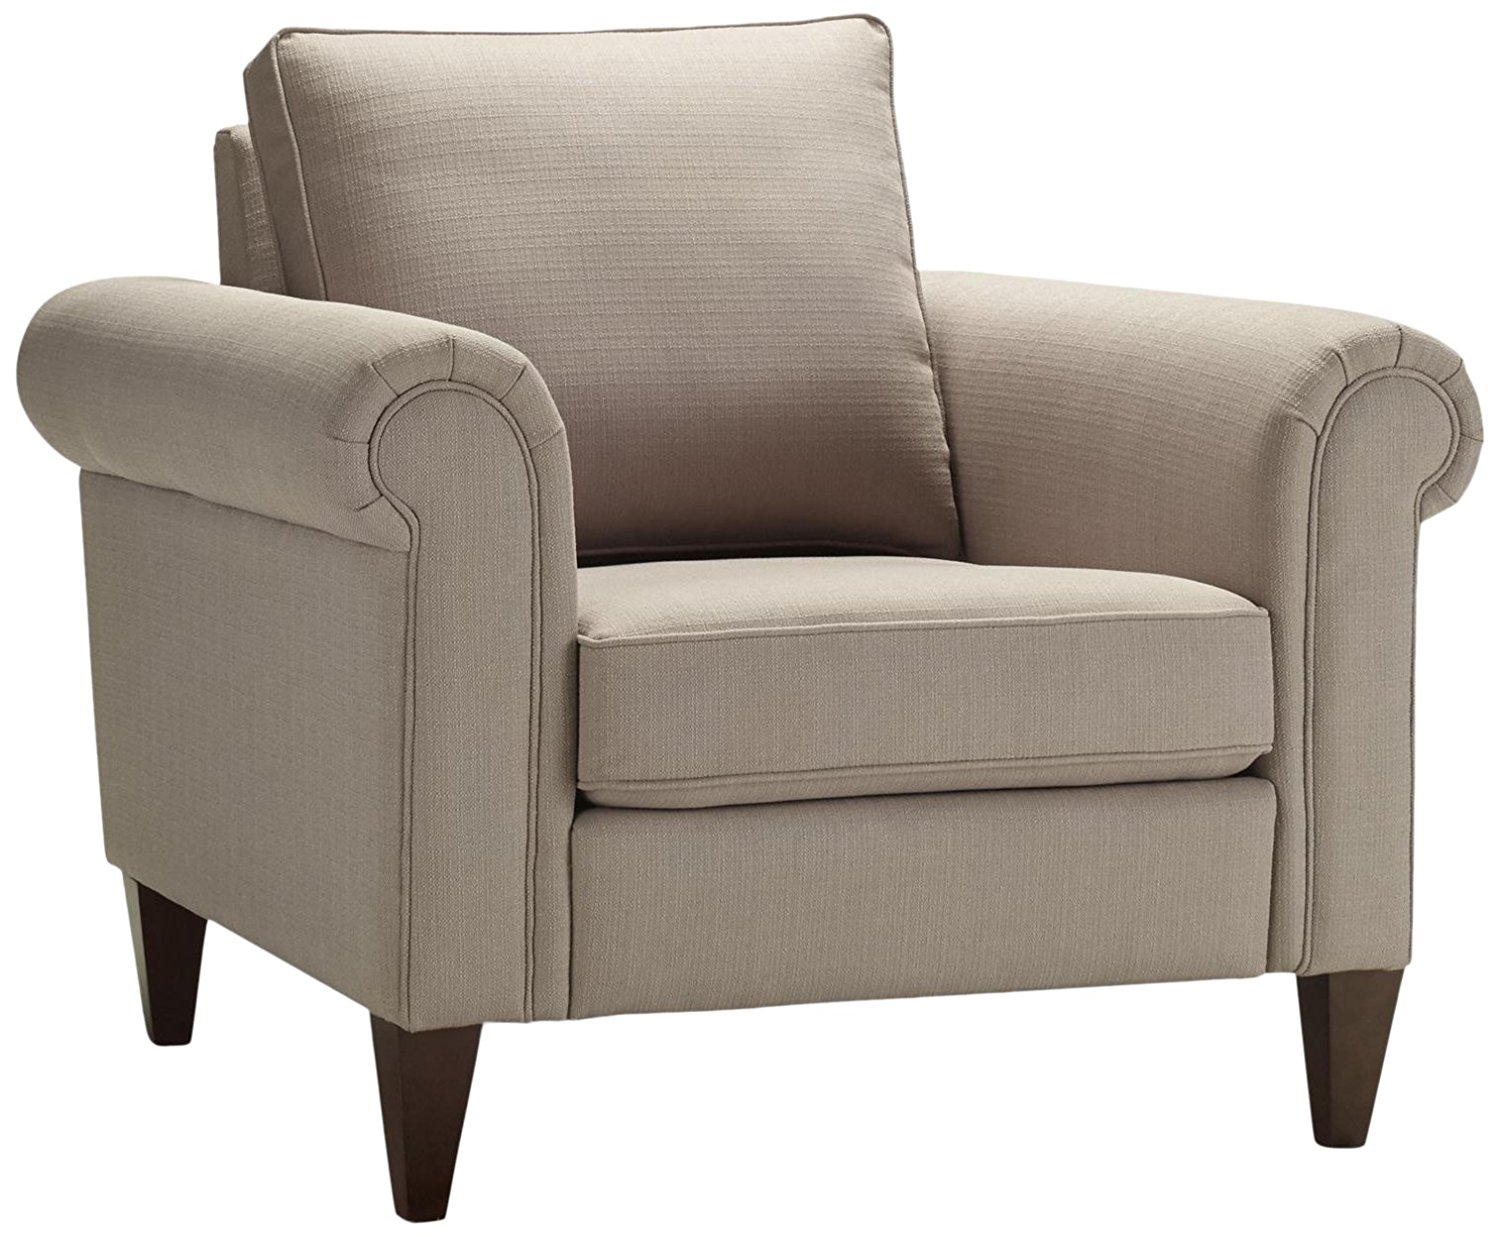 homeware peyton sofa fabric sets in bangalore buy club chair cheap price on m alibaba com avery bisque 37 by 39 34 inch